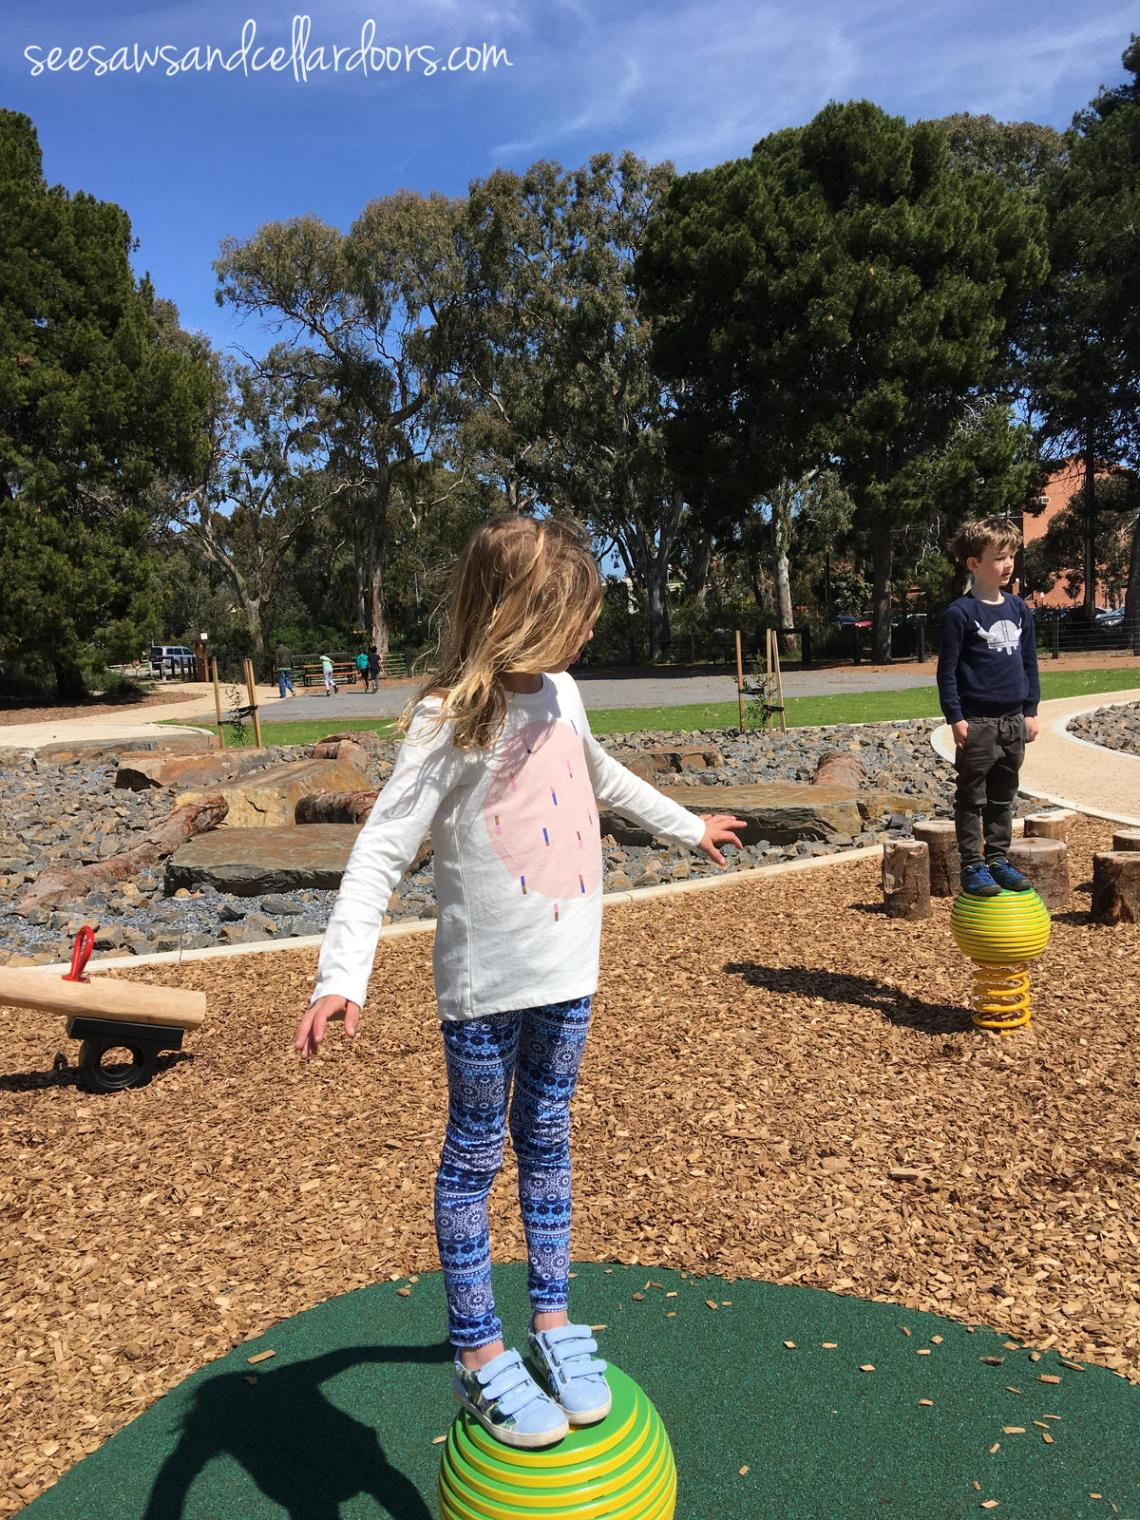 North Adelaide Playspace Review by Susannah Marks